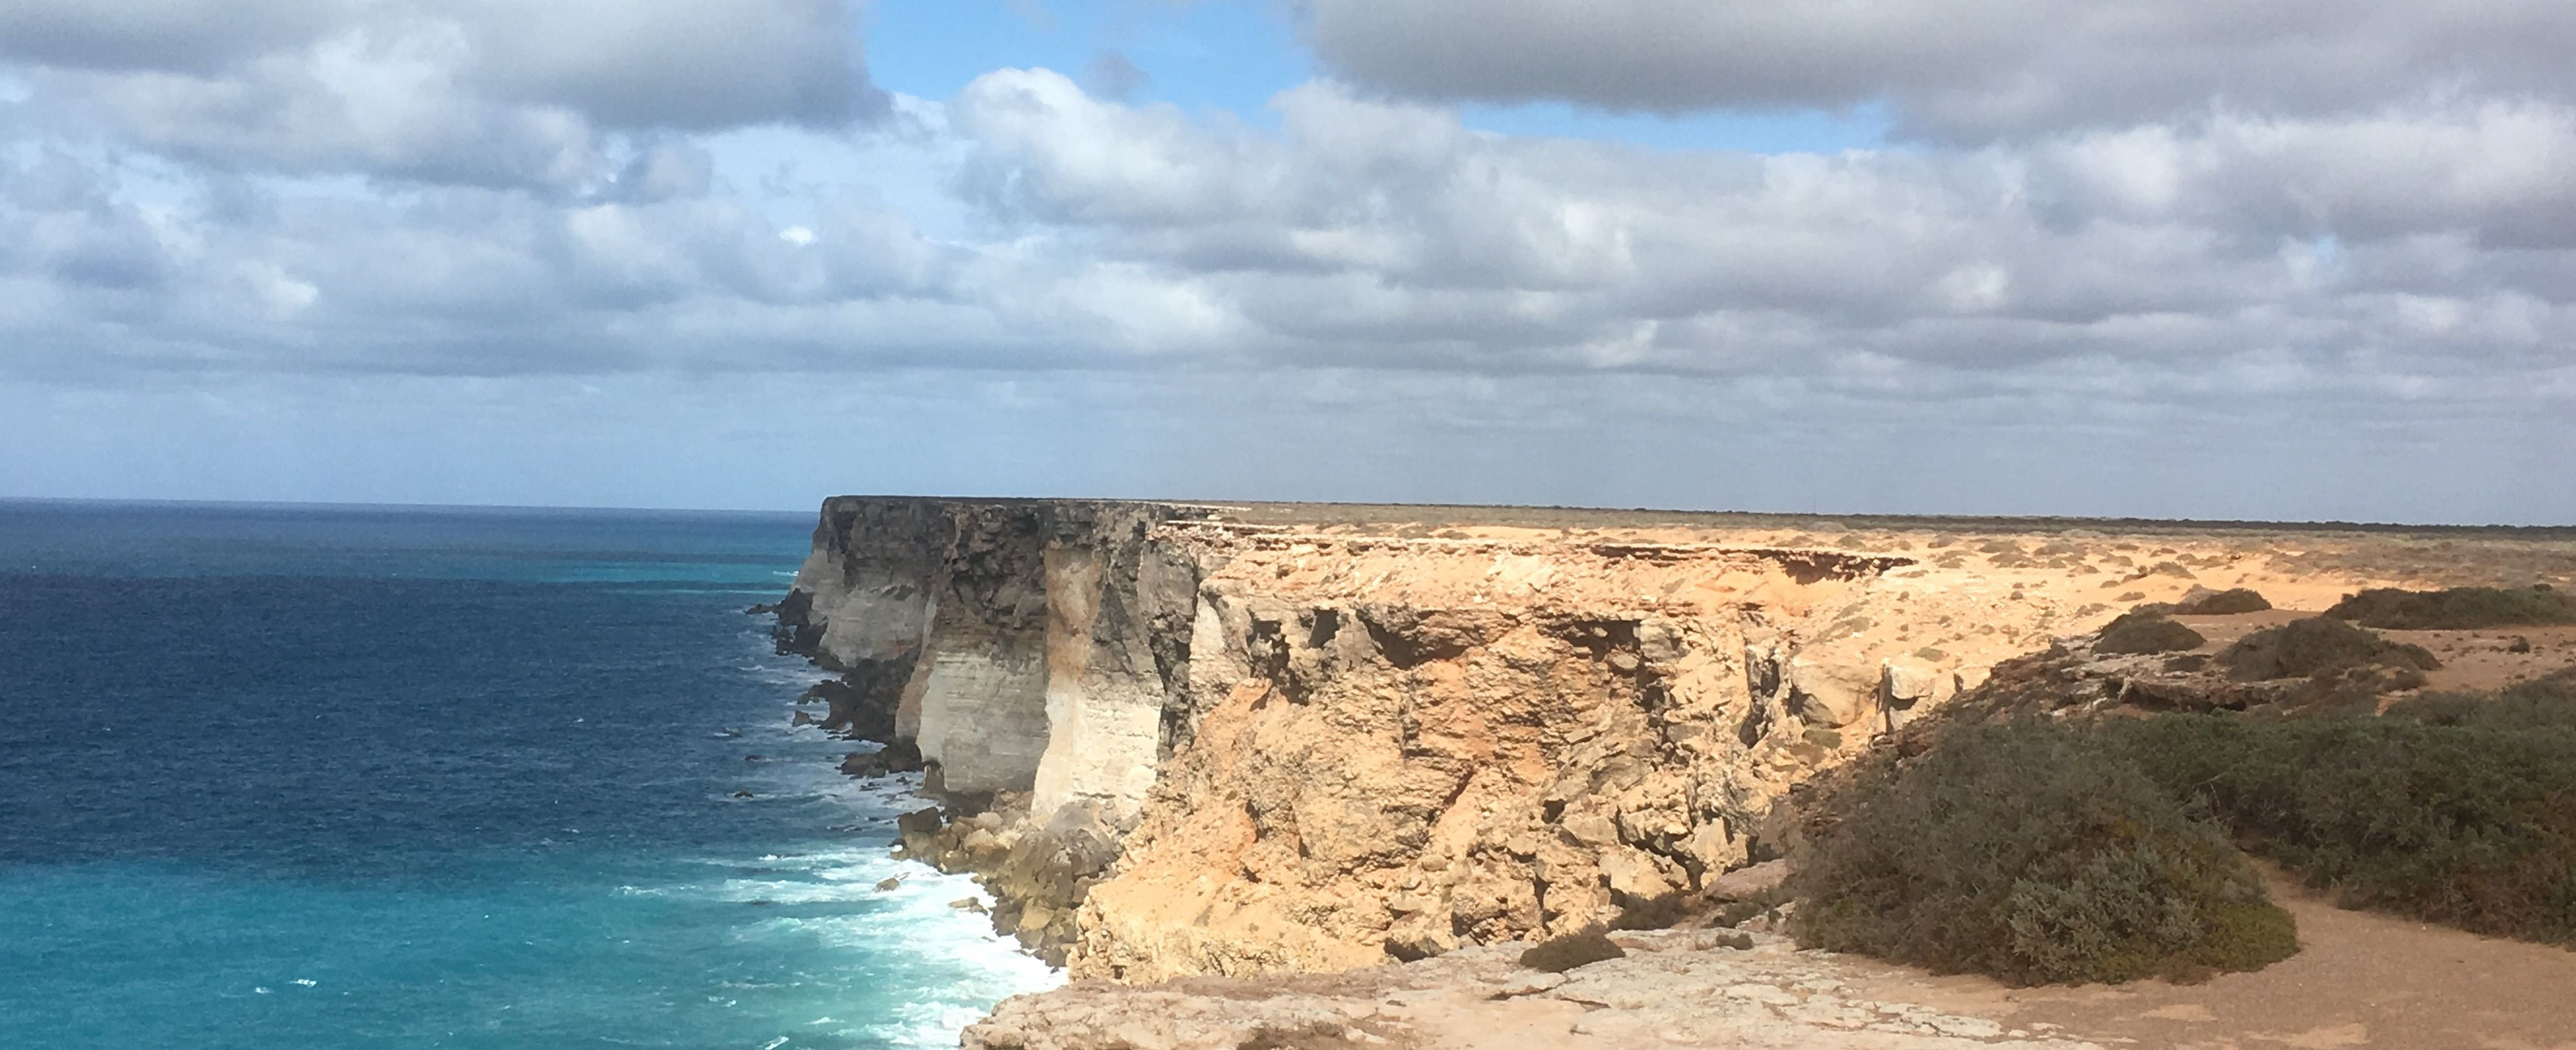 Nullarbor and Eyre Peninsula